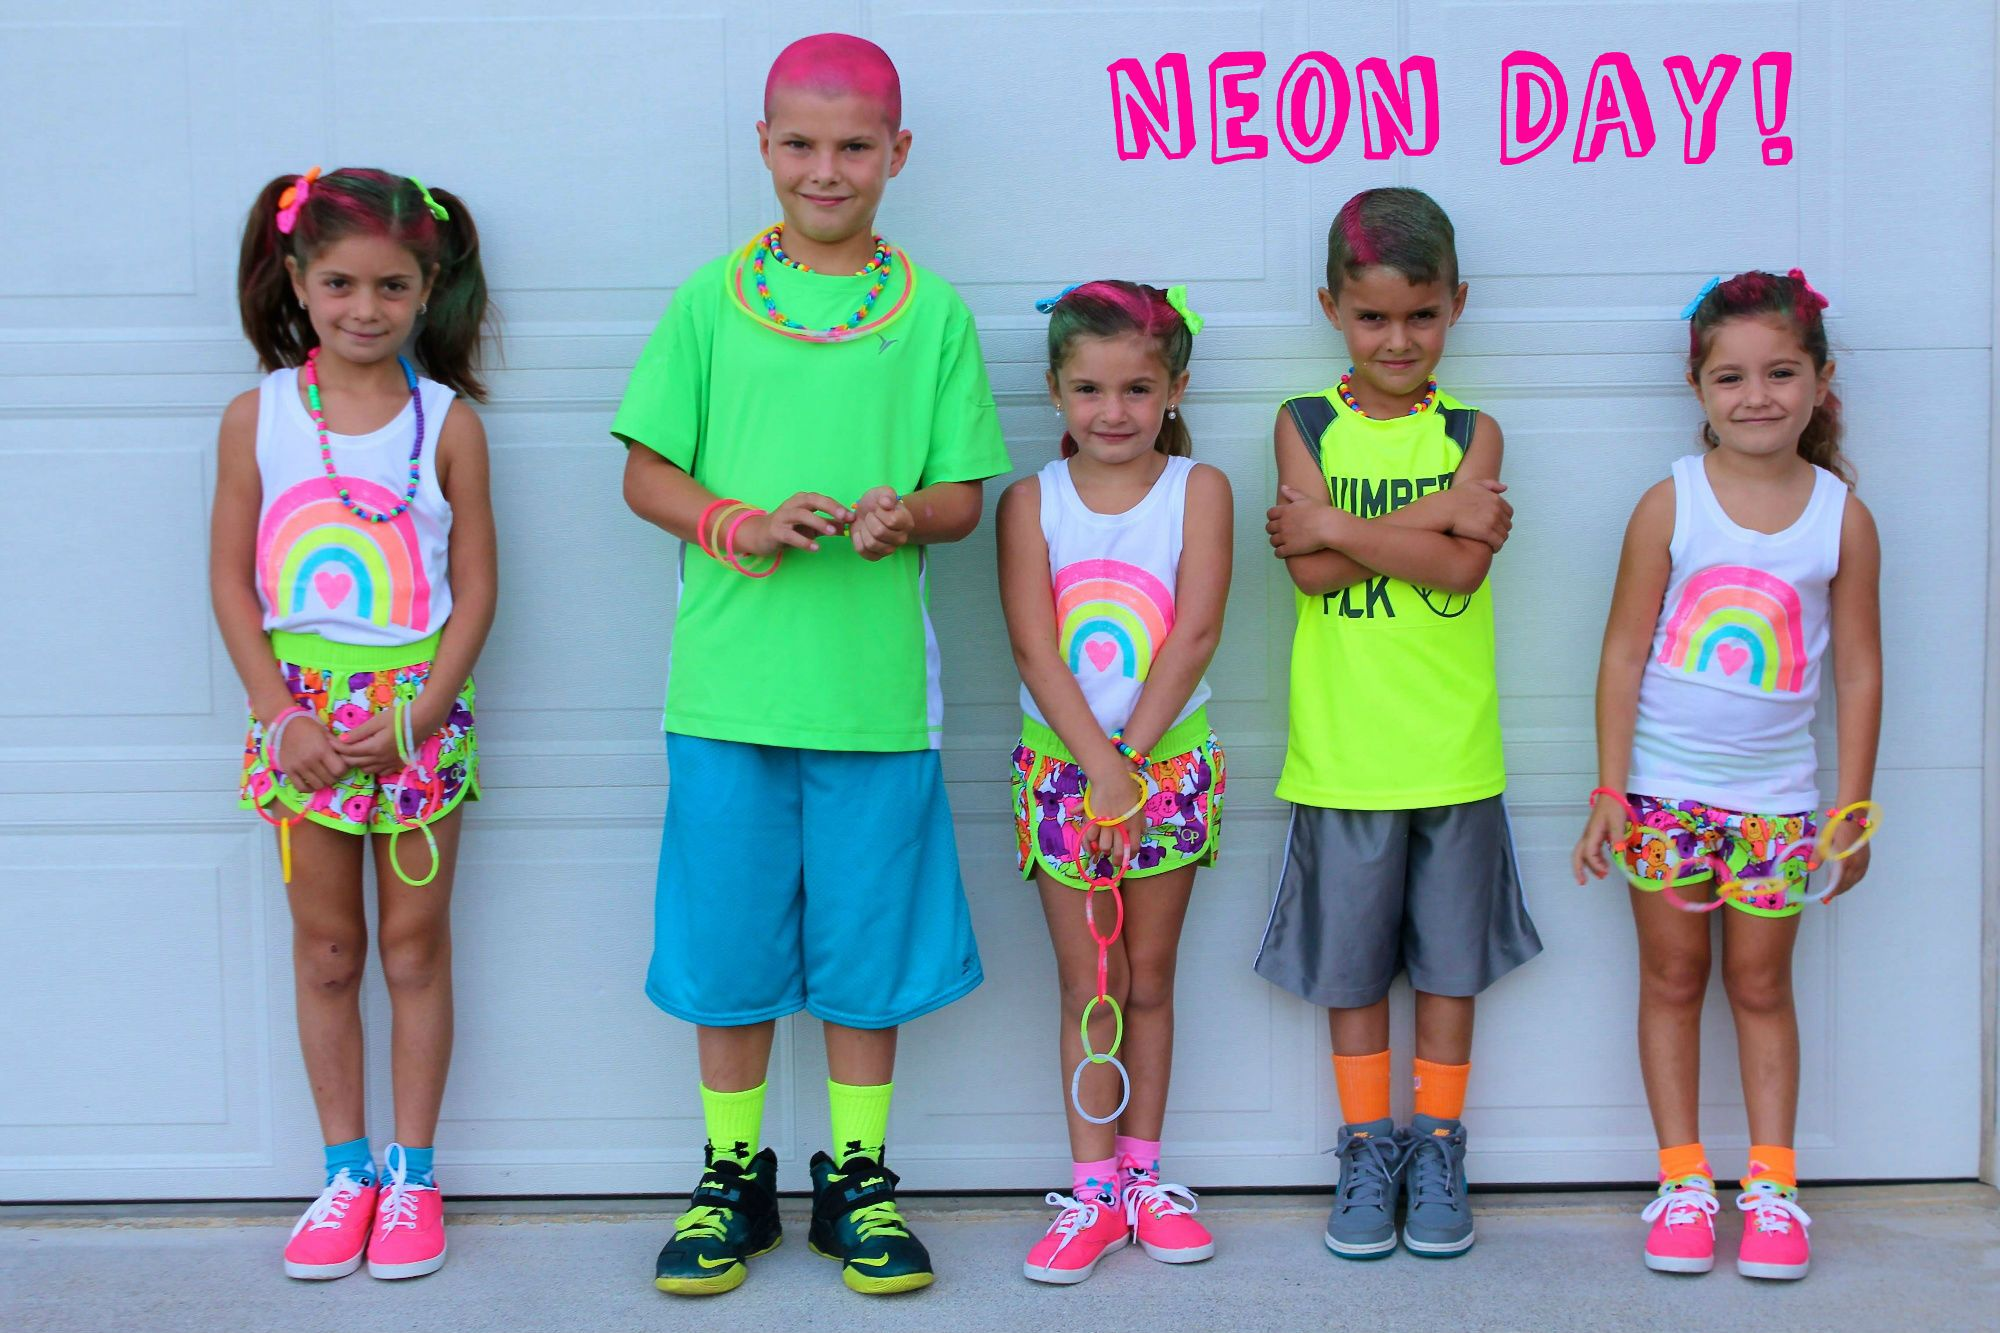 Neon Day!!! | Neon, Spirit week ideas and School